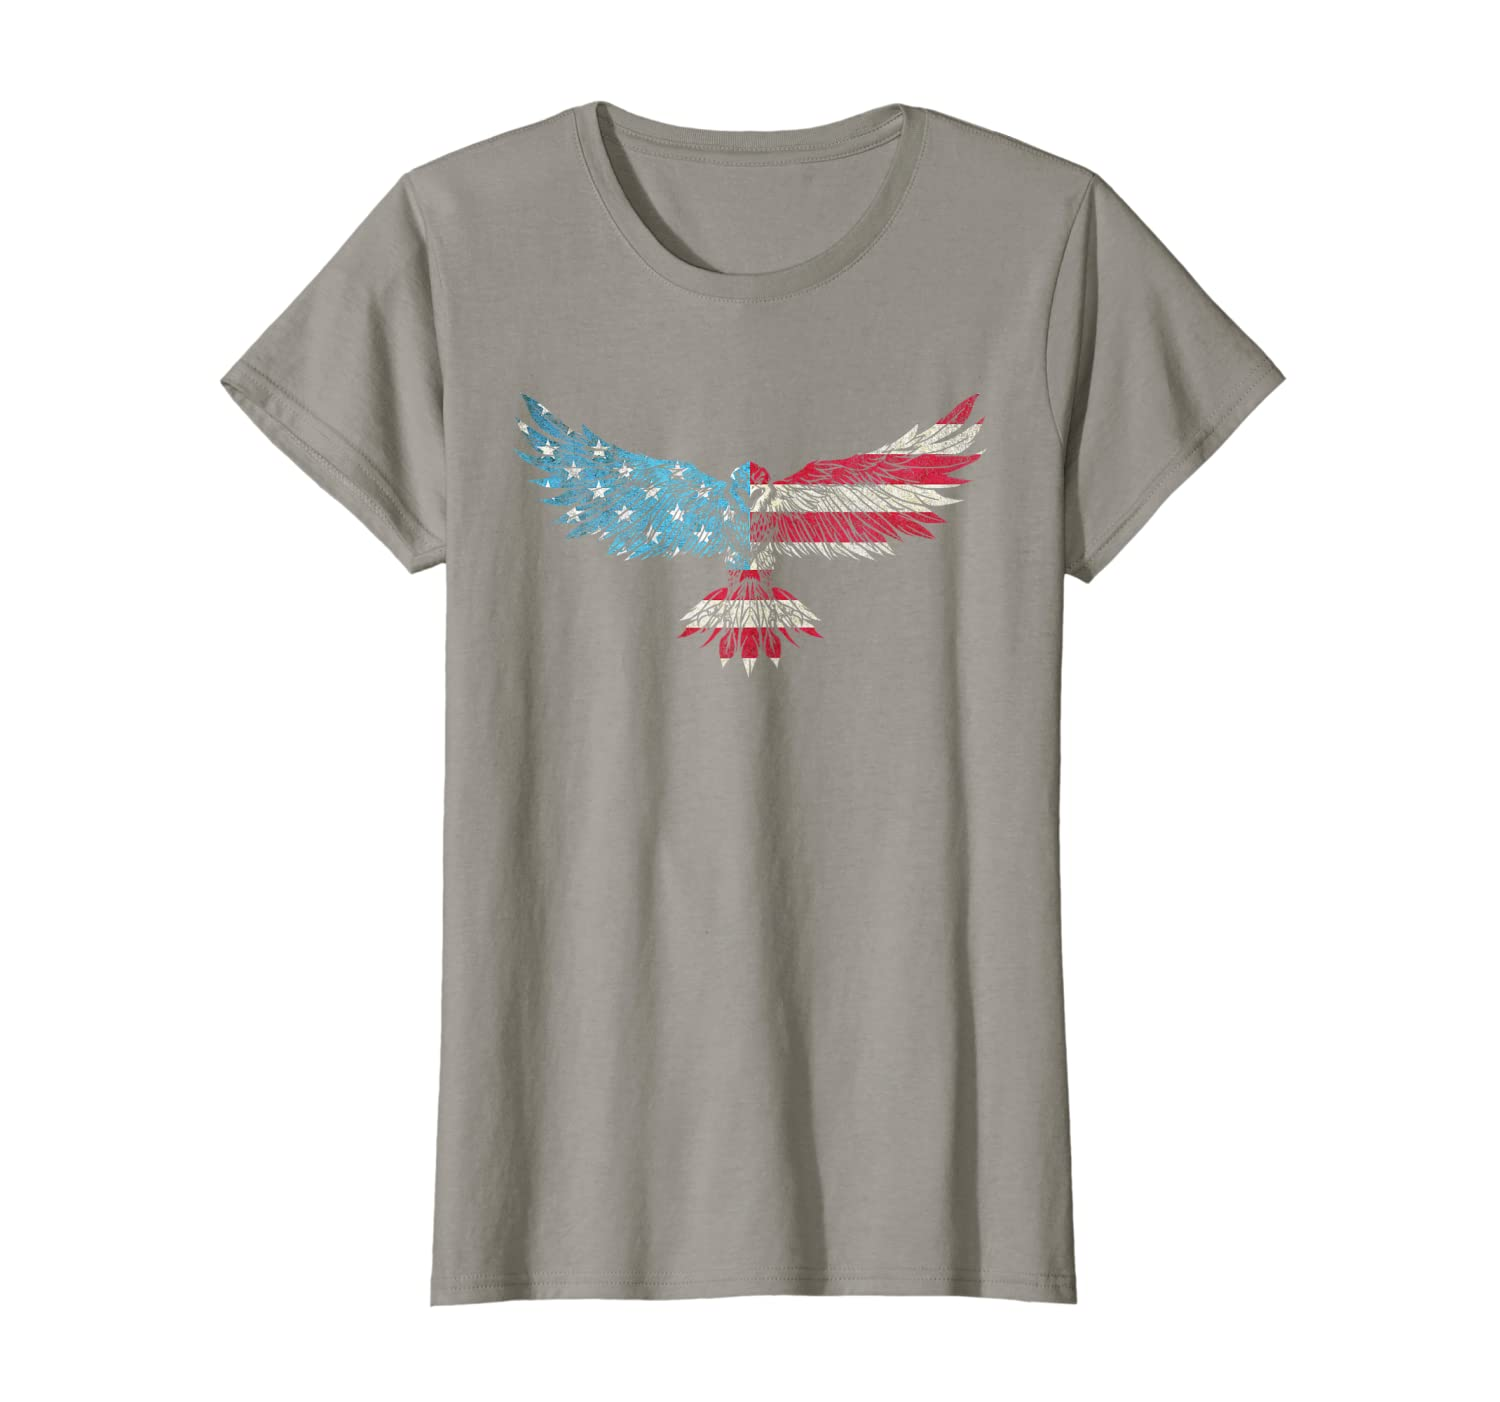 Patriotic USA American Flag Bald Eagle Silhouette T-Shirt